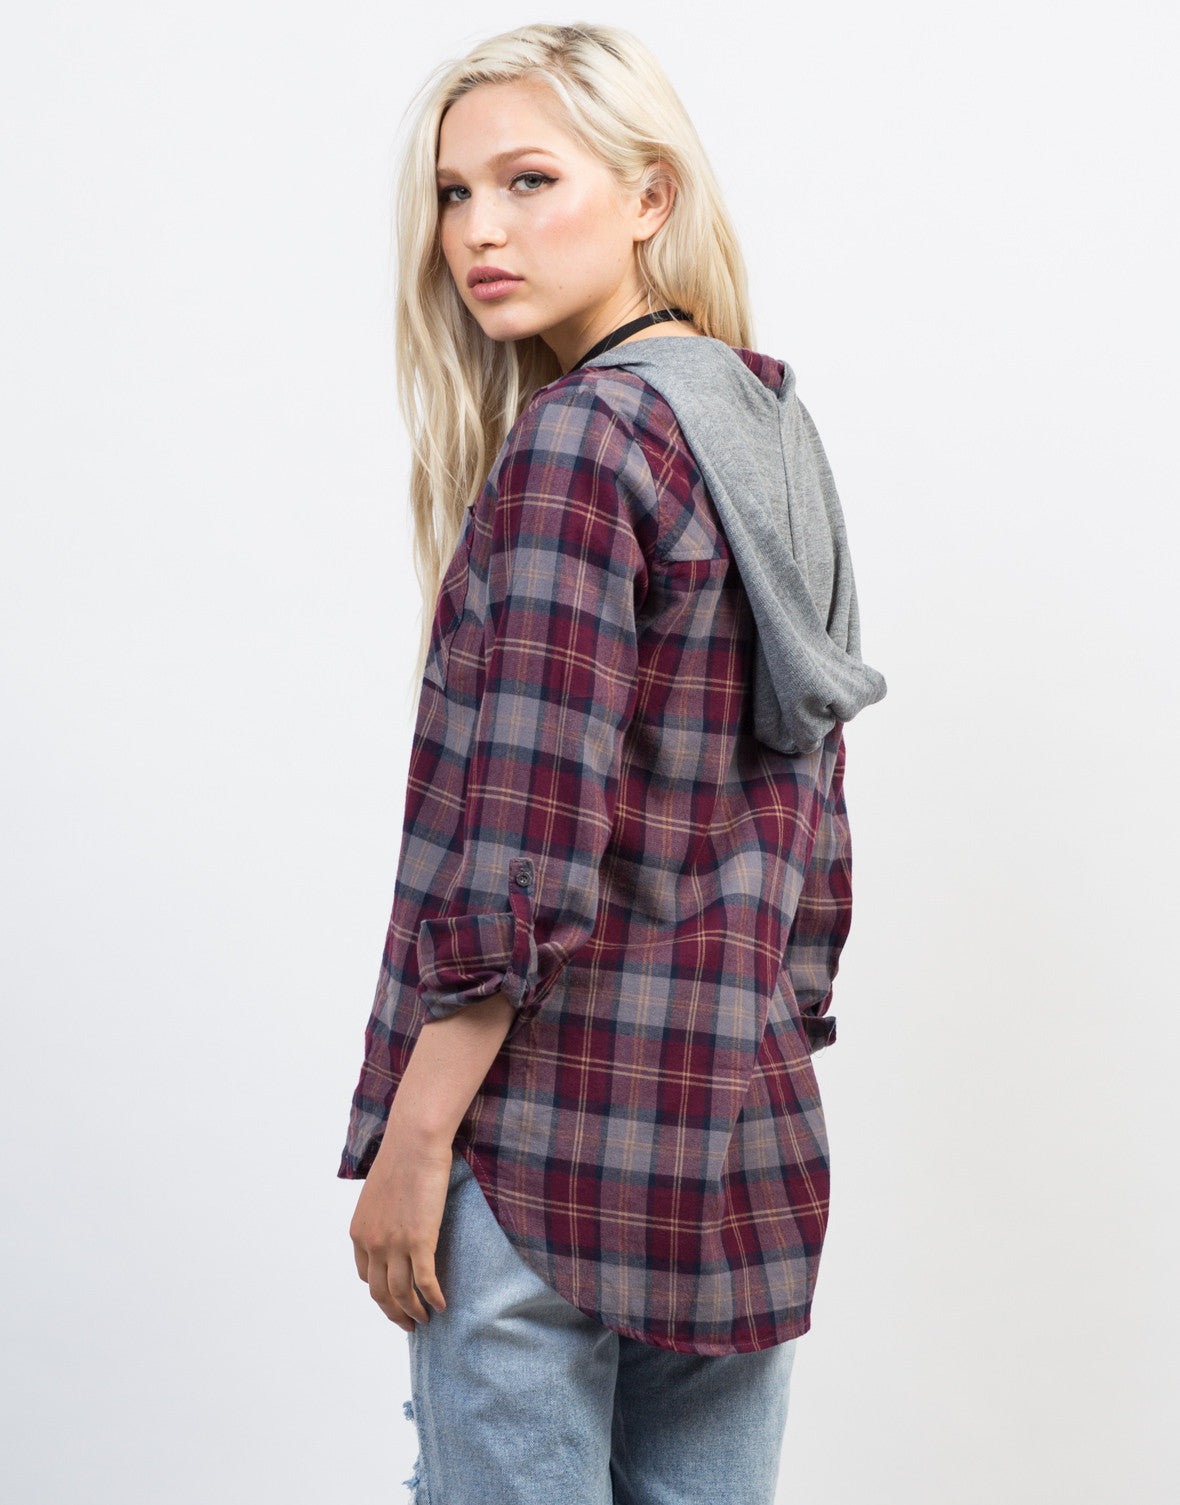 Back View of Hooded Plaid Shirt